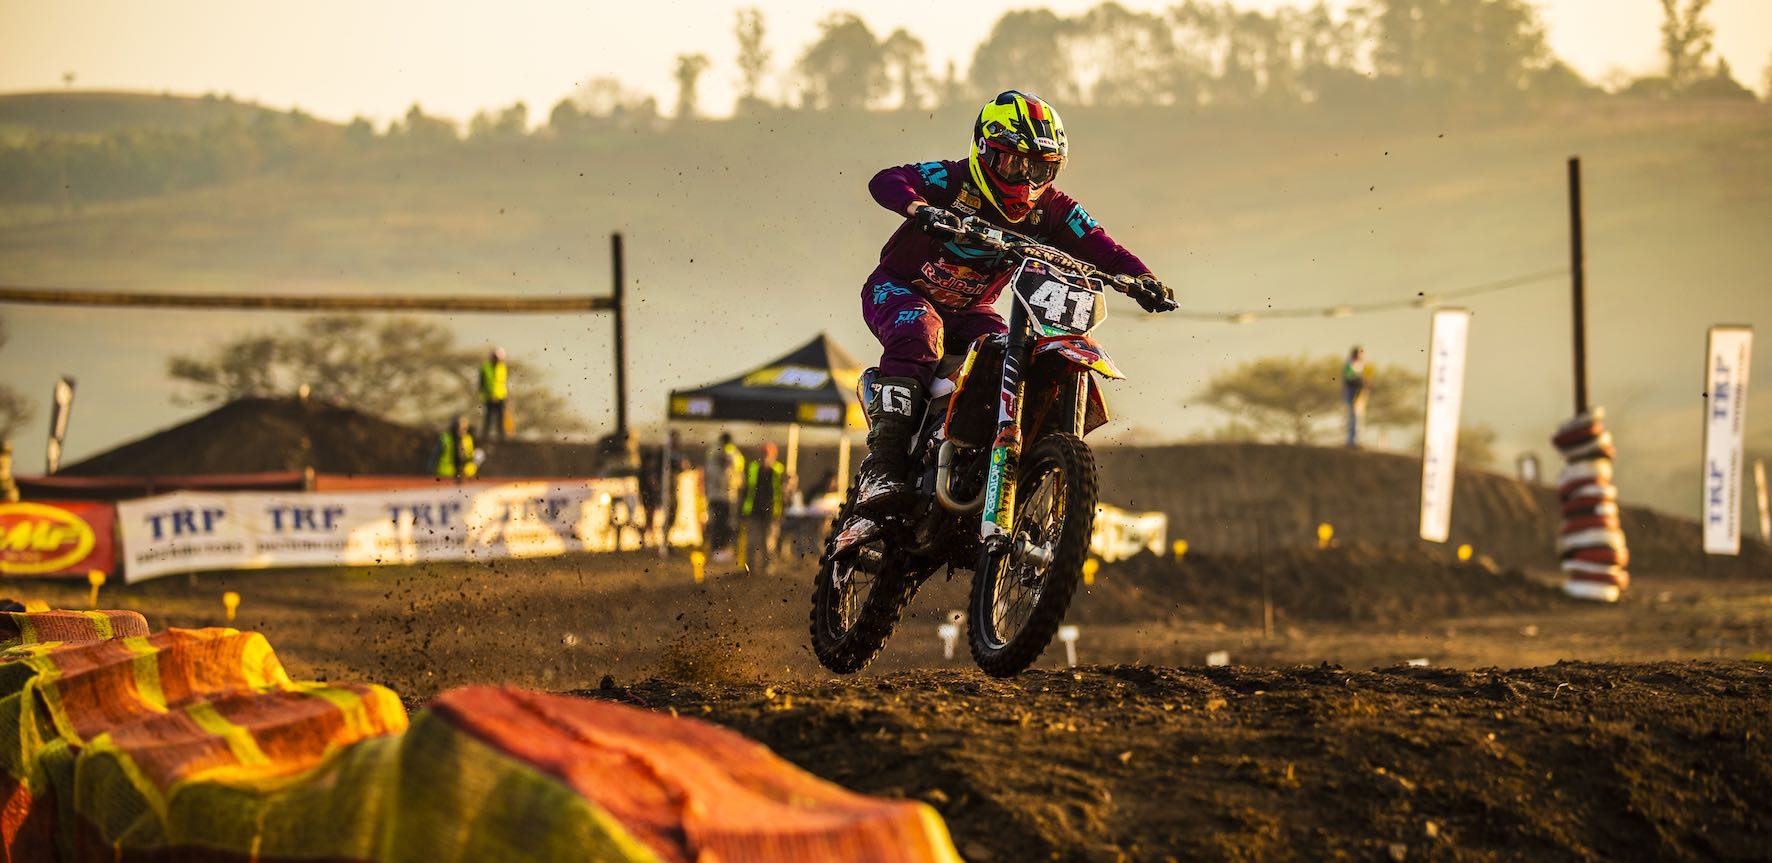 Tristan Purdon racing in the 2019 South African National Motocross Championship in Pietermaritzburg